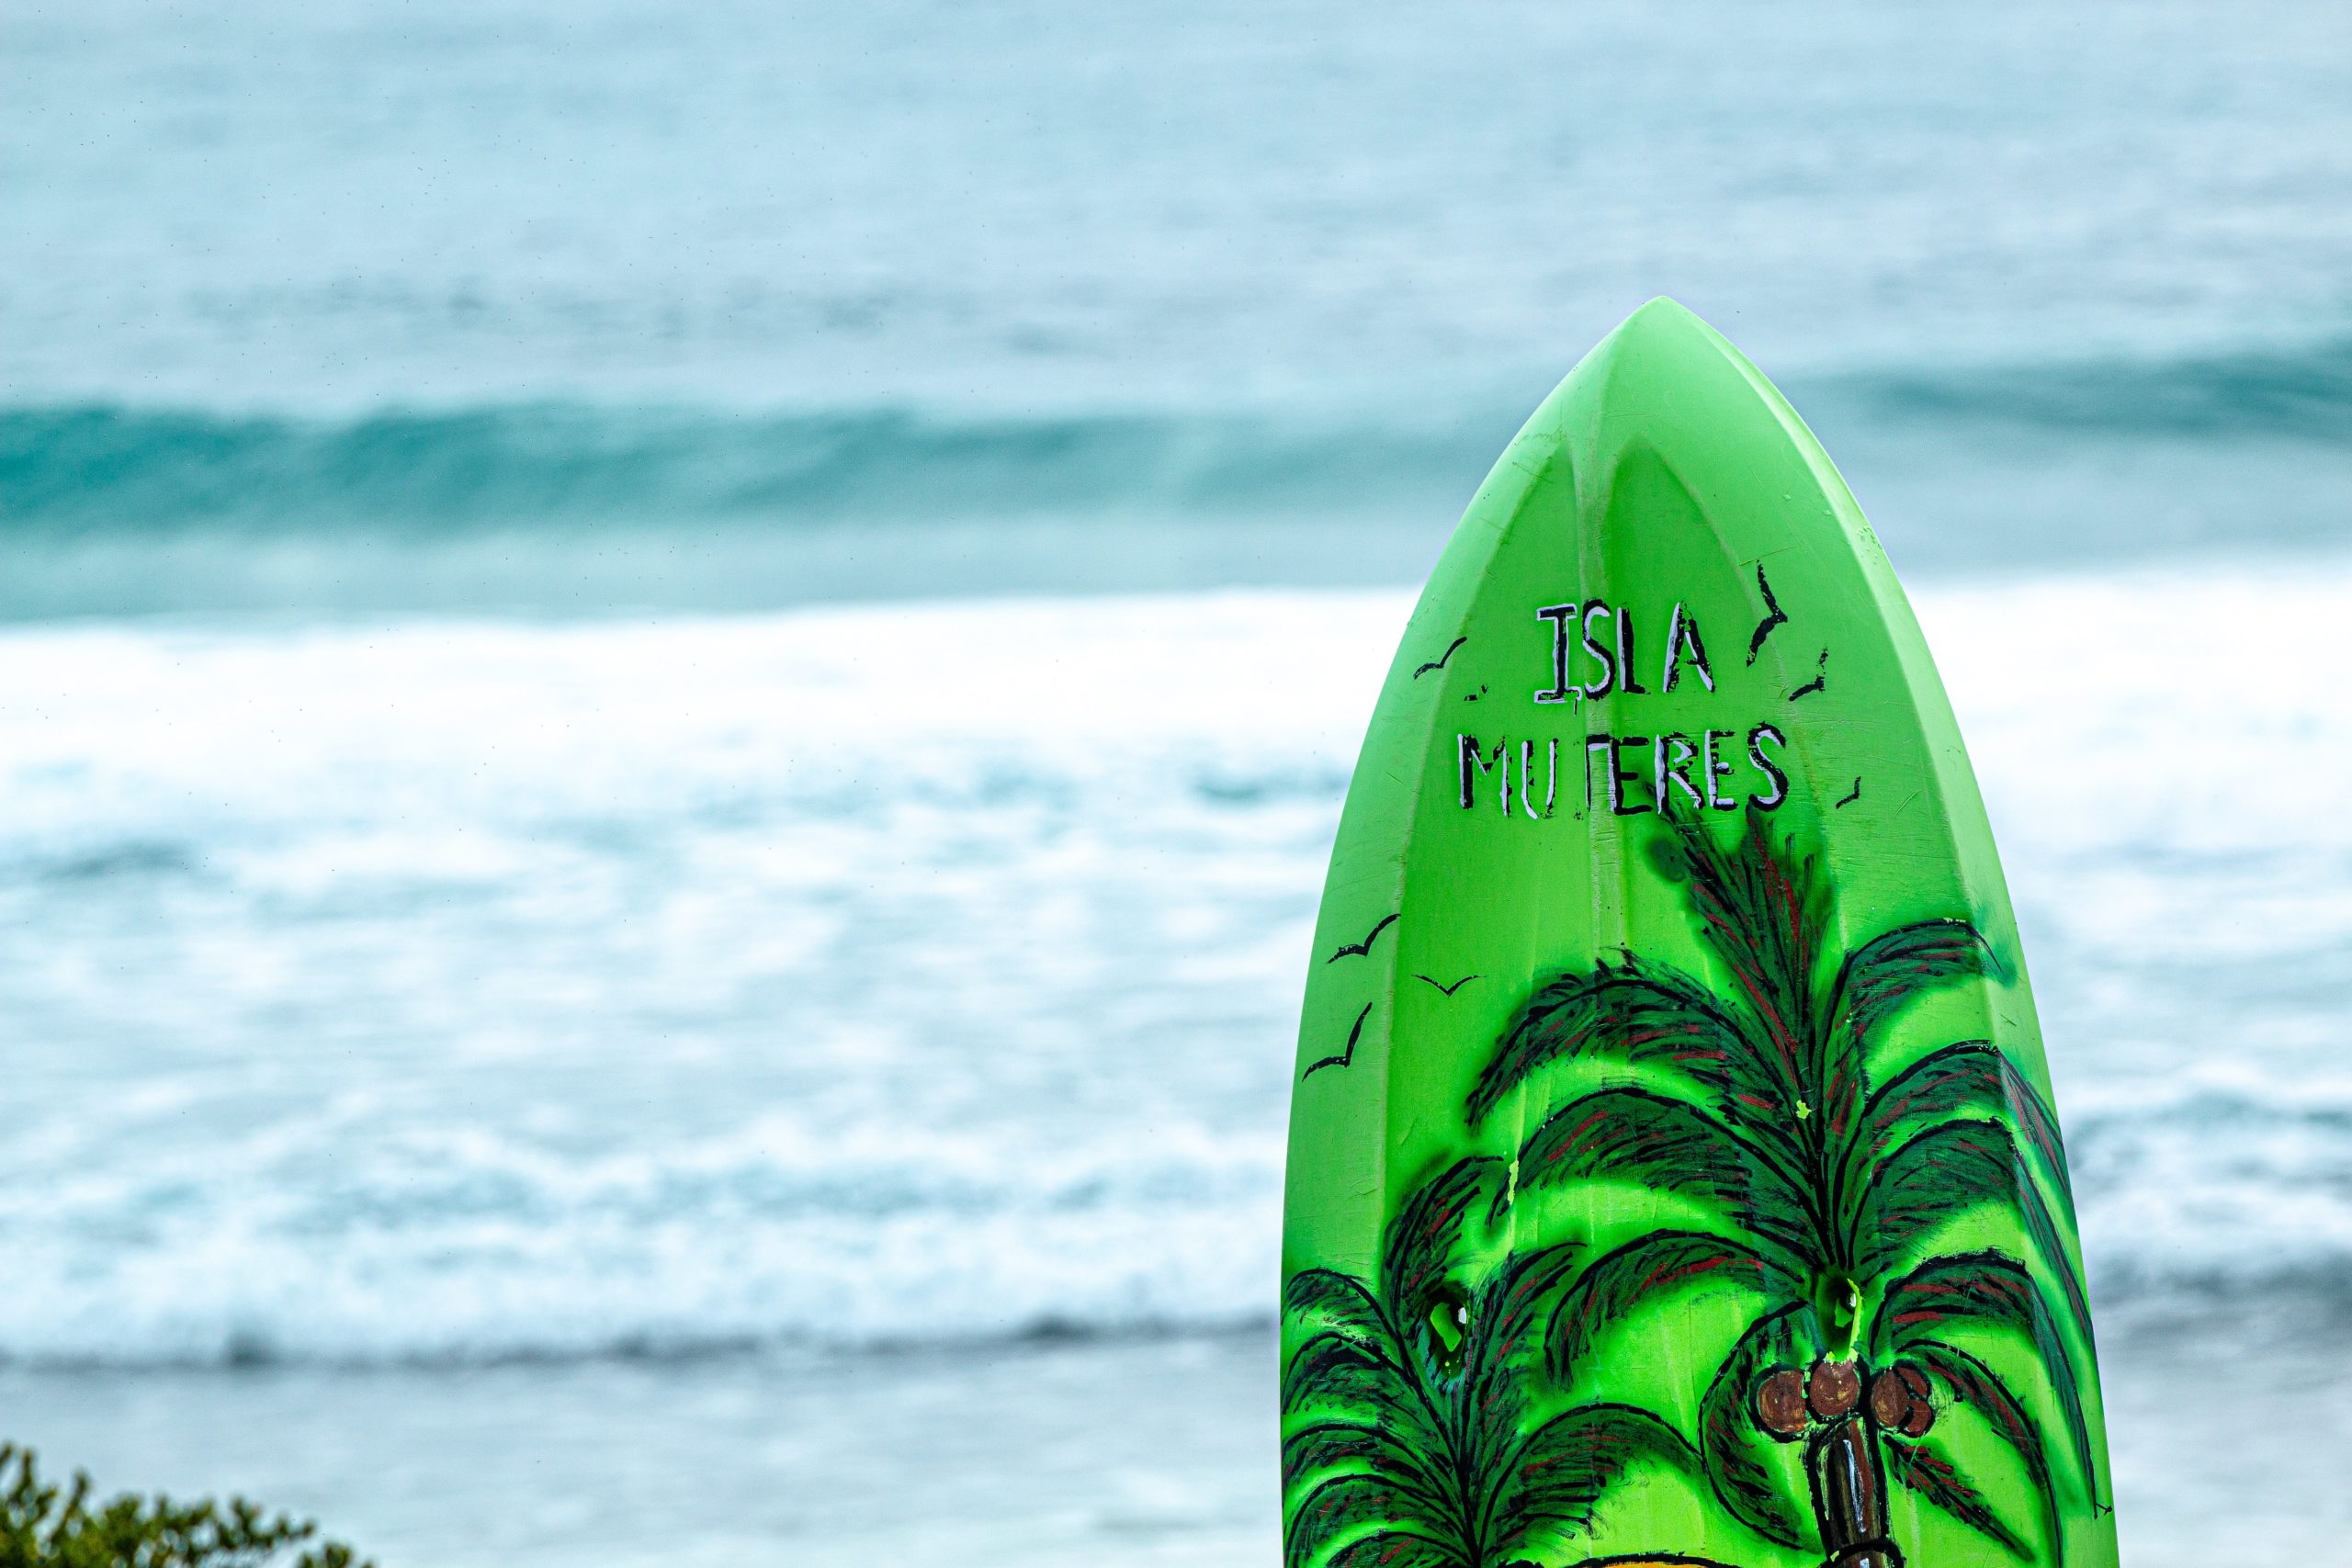 Best Surfing Equipment: Where To Buy?